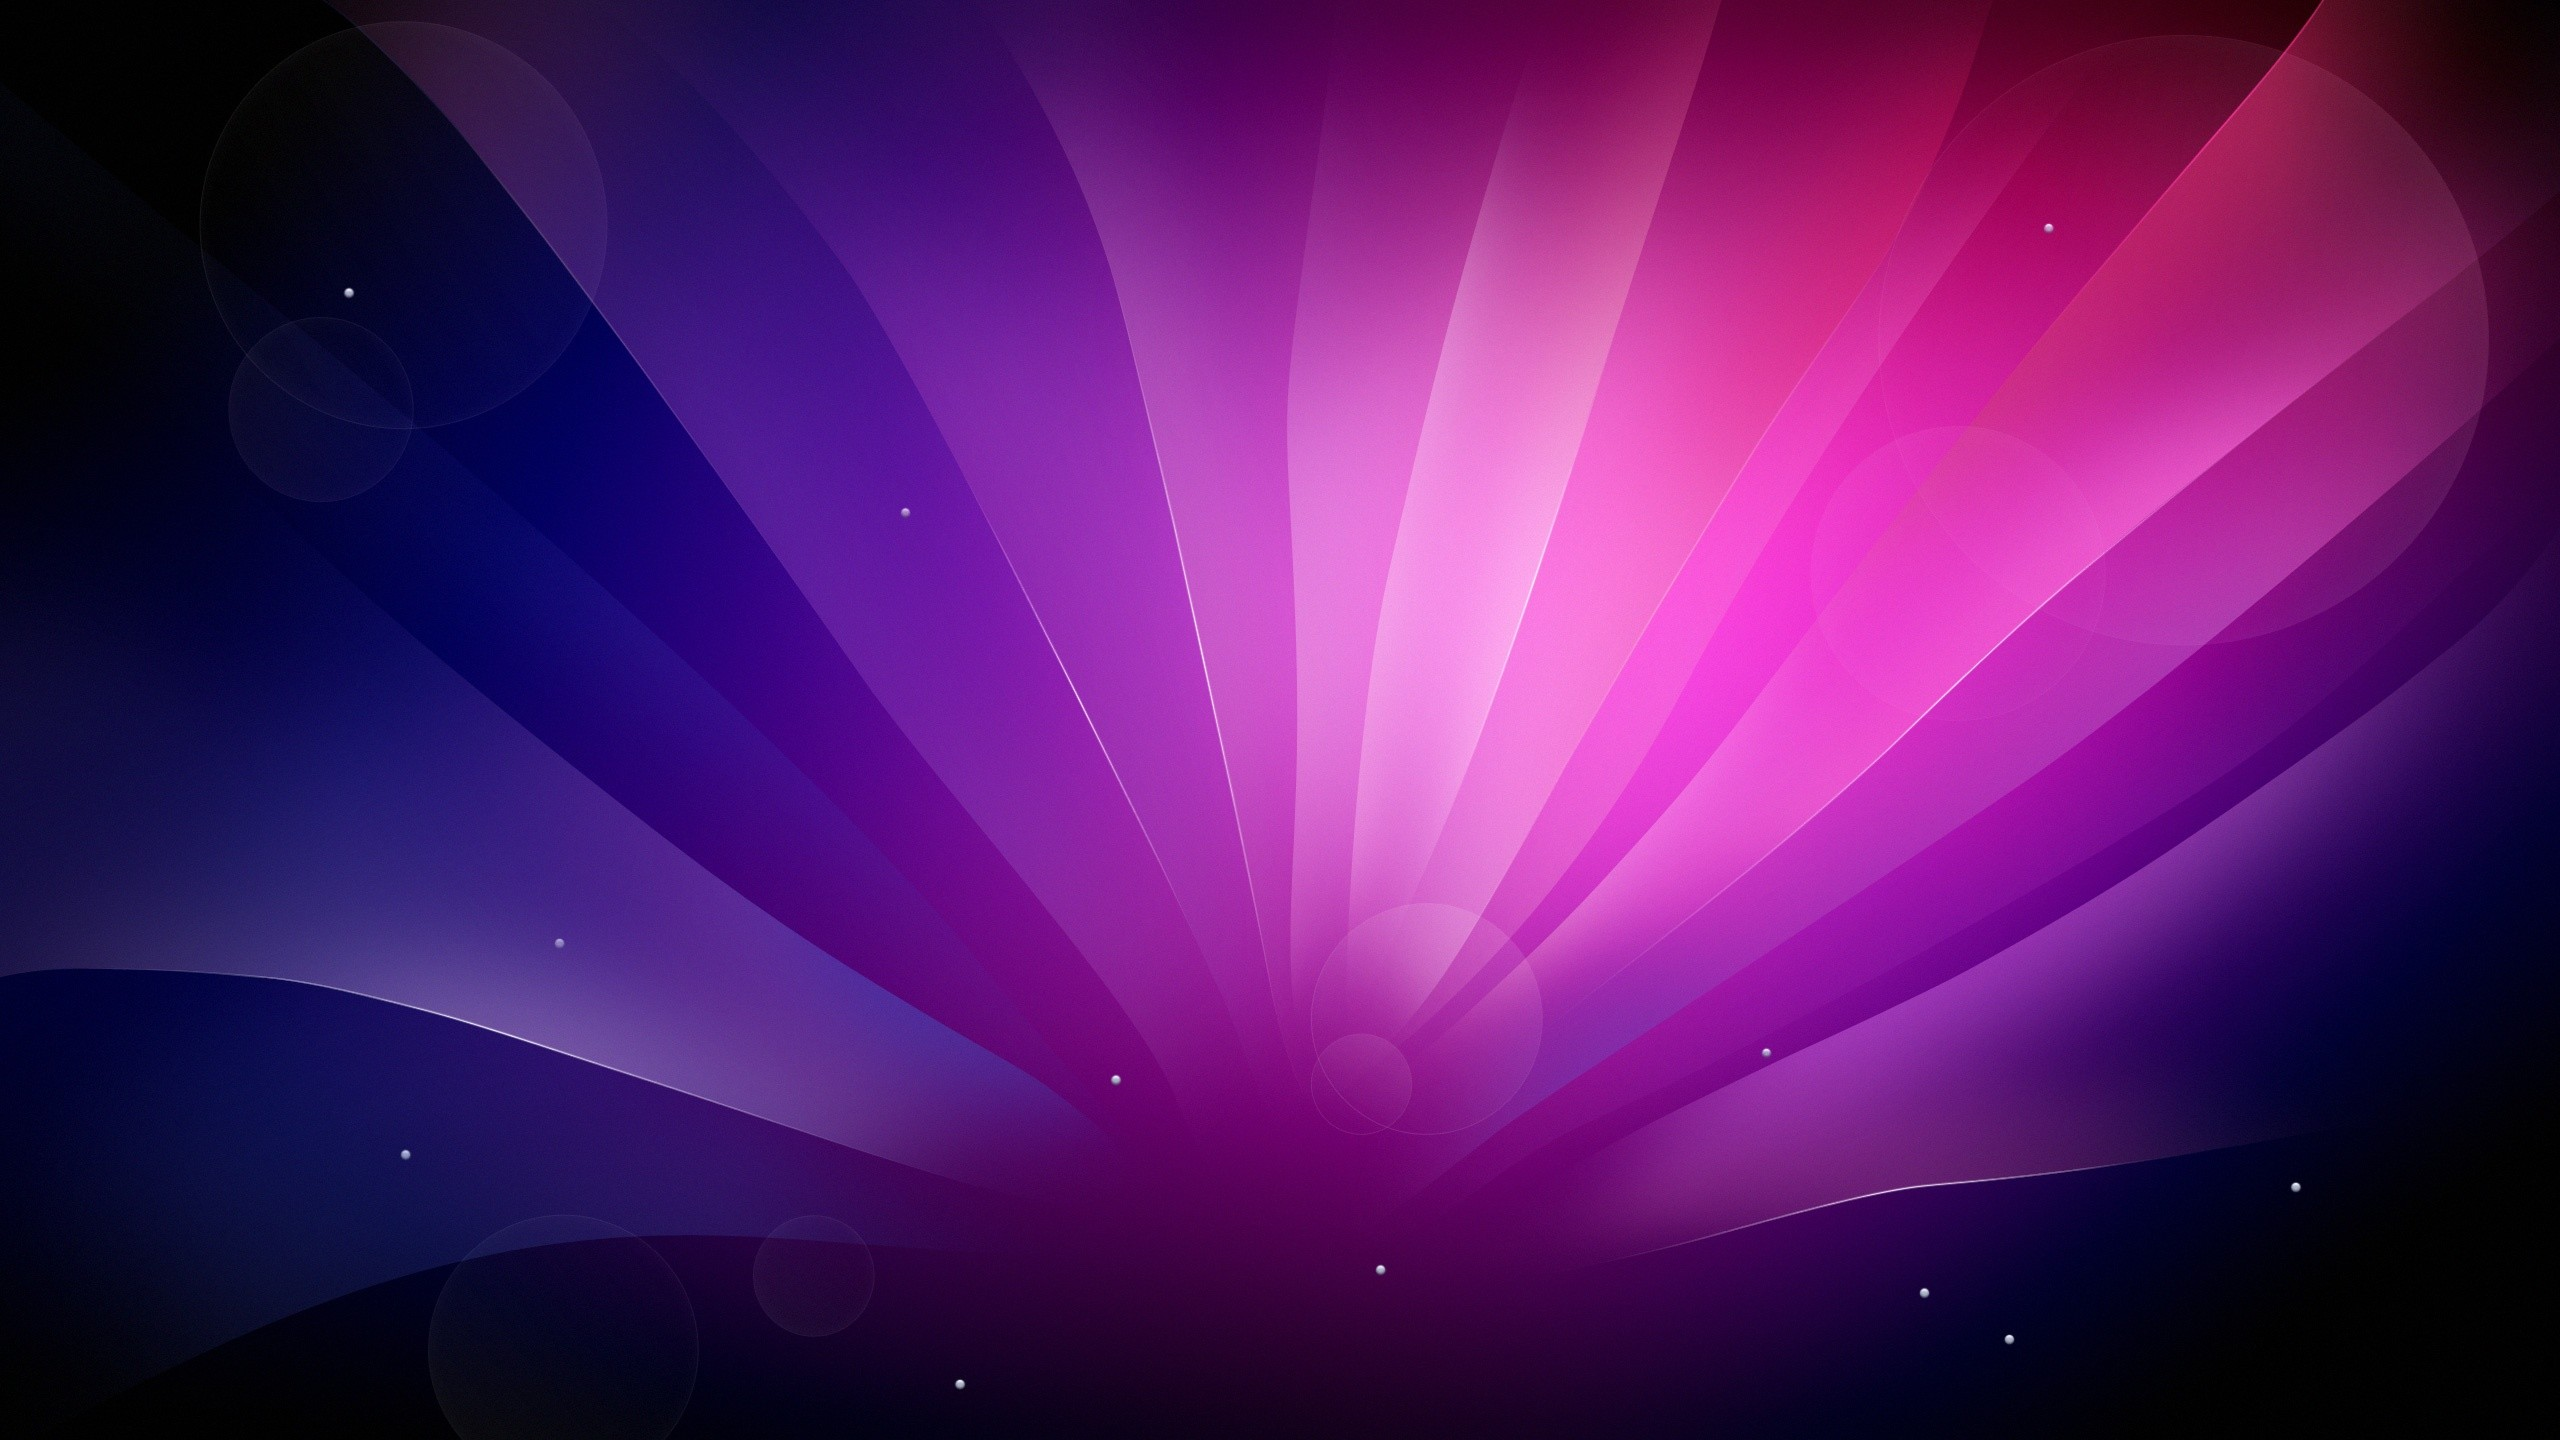 2560x1440 HD-Abstract-Backgrounds